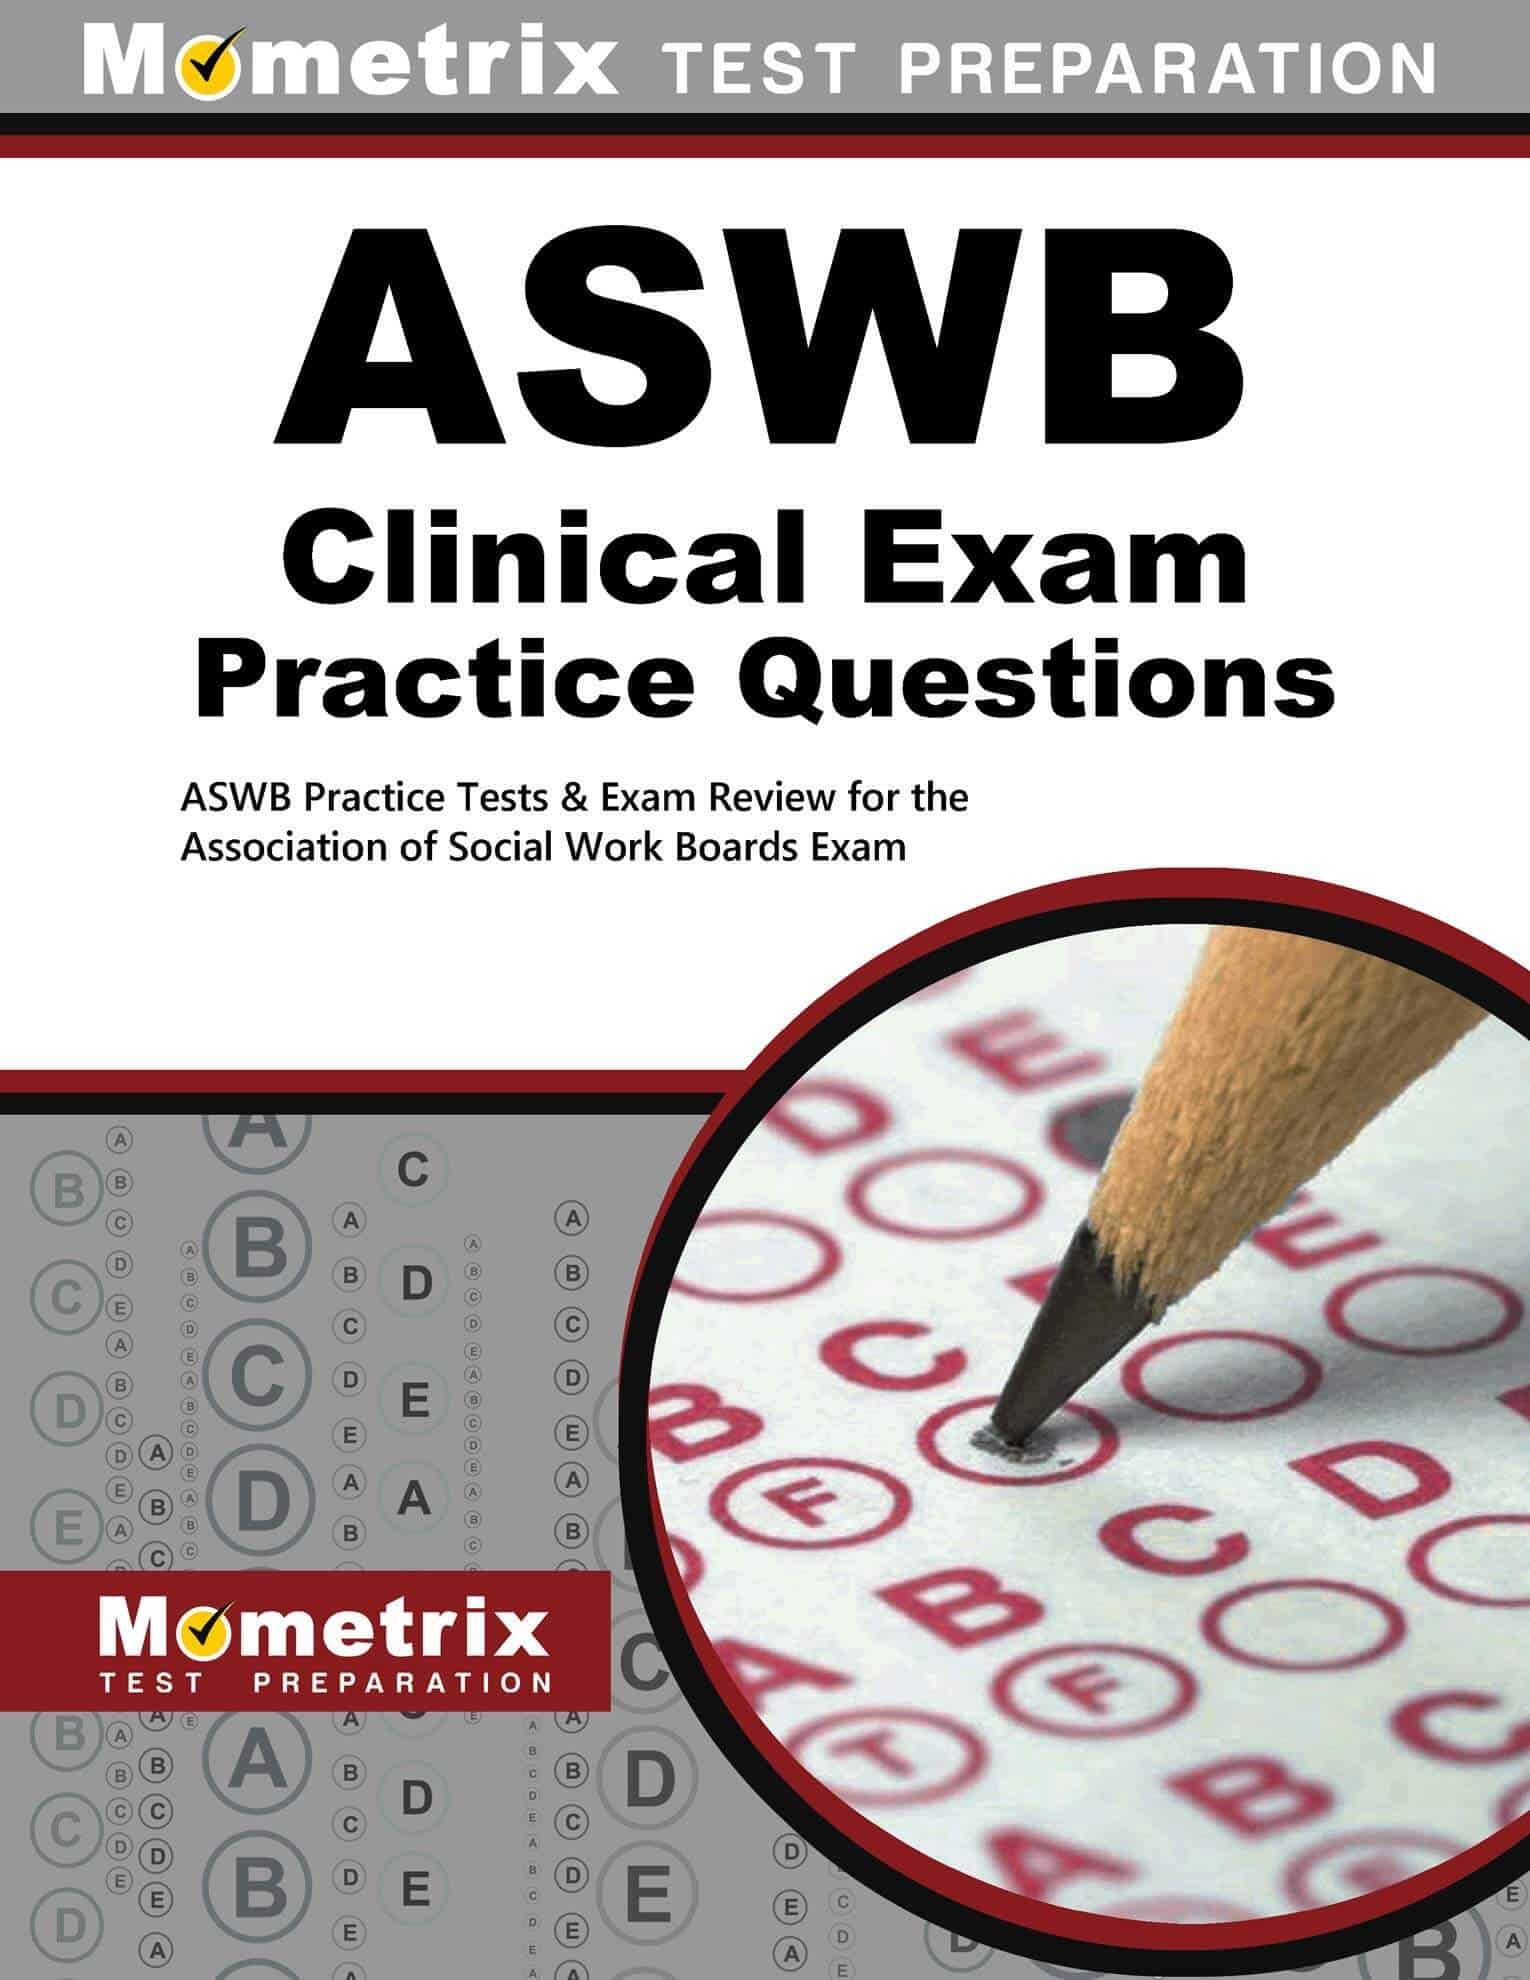 An image of the ASWB Clinical Exam Practice Questions